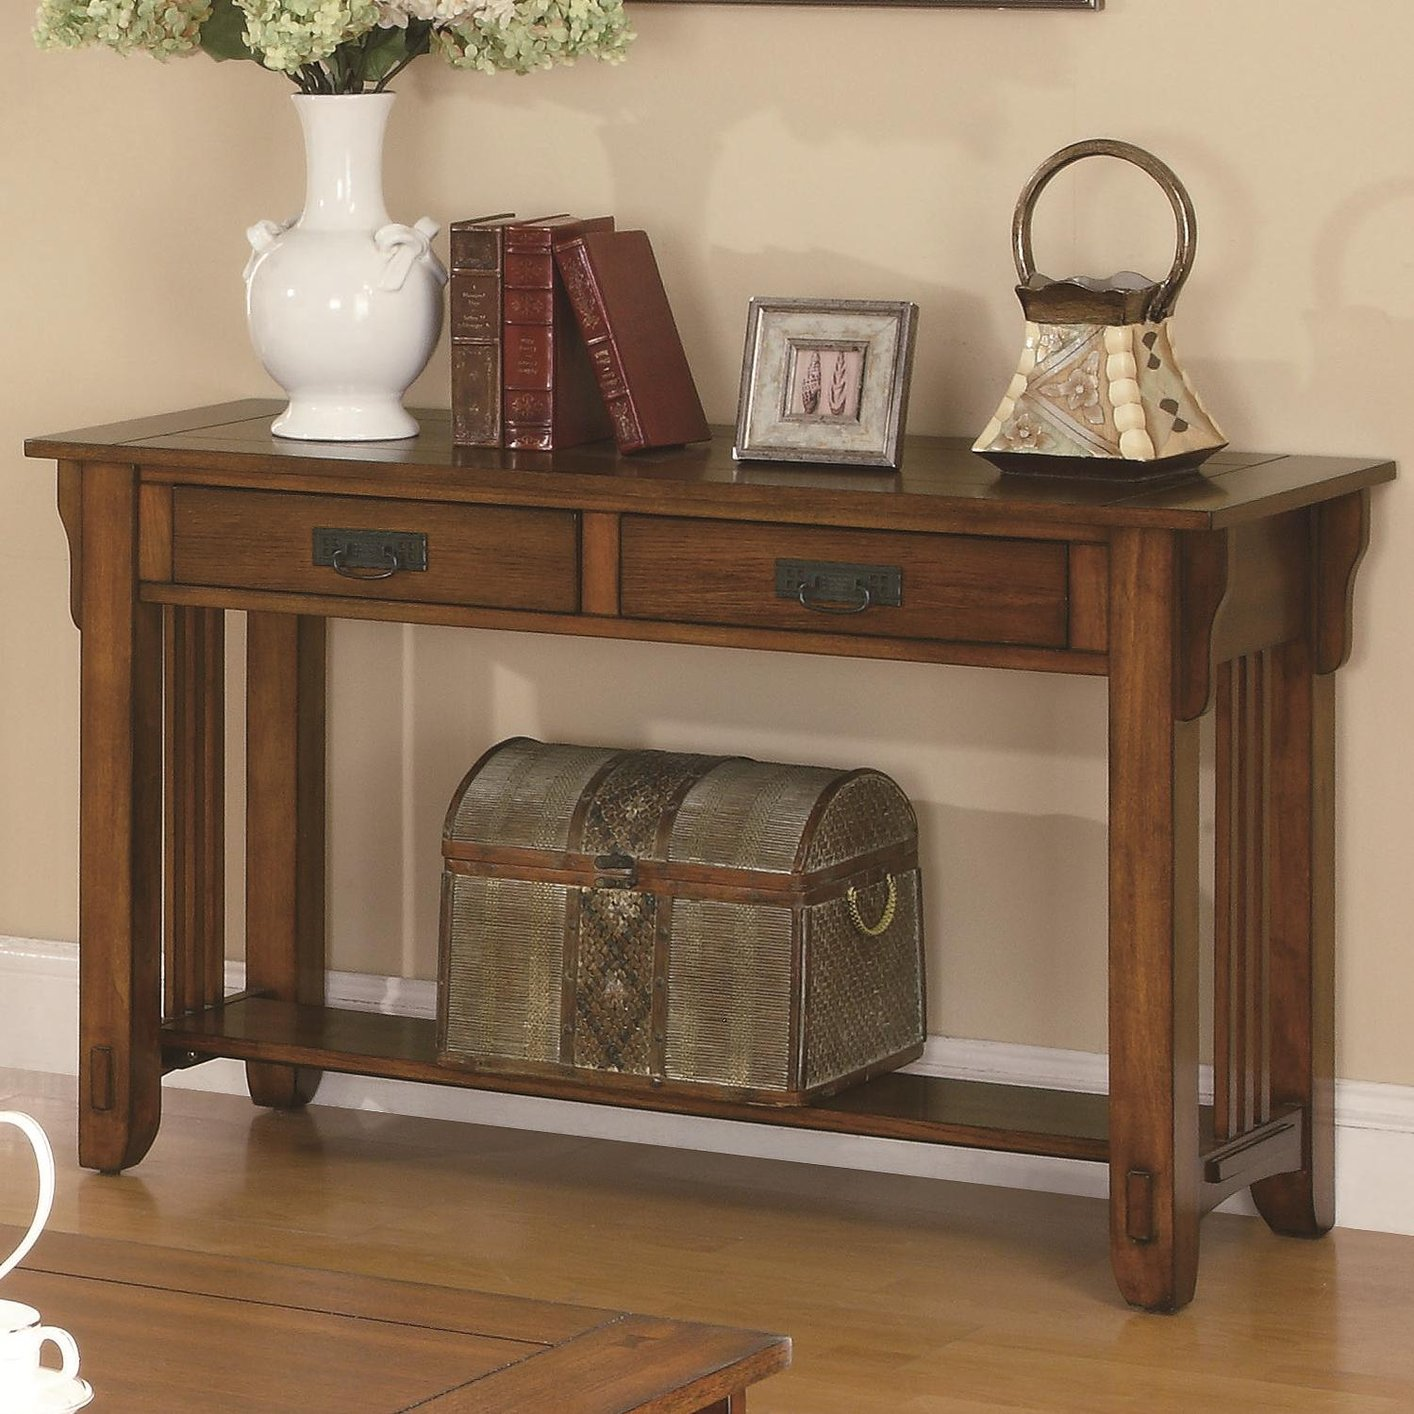 coaster fine furniture cappuccino rectangular console and sofa table reclining nailhead trim colton 702009 brown wood steal a